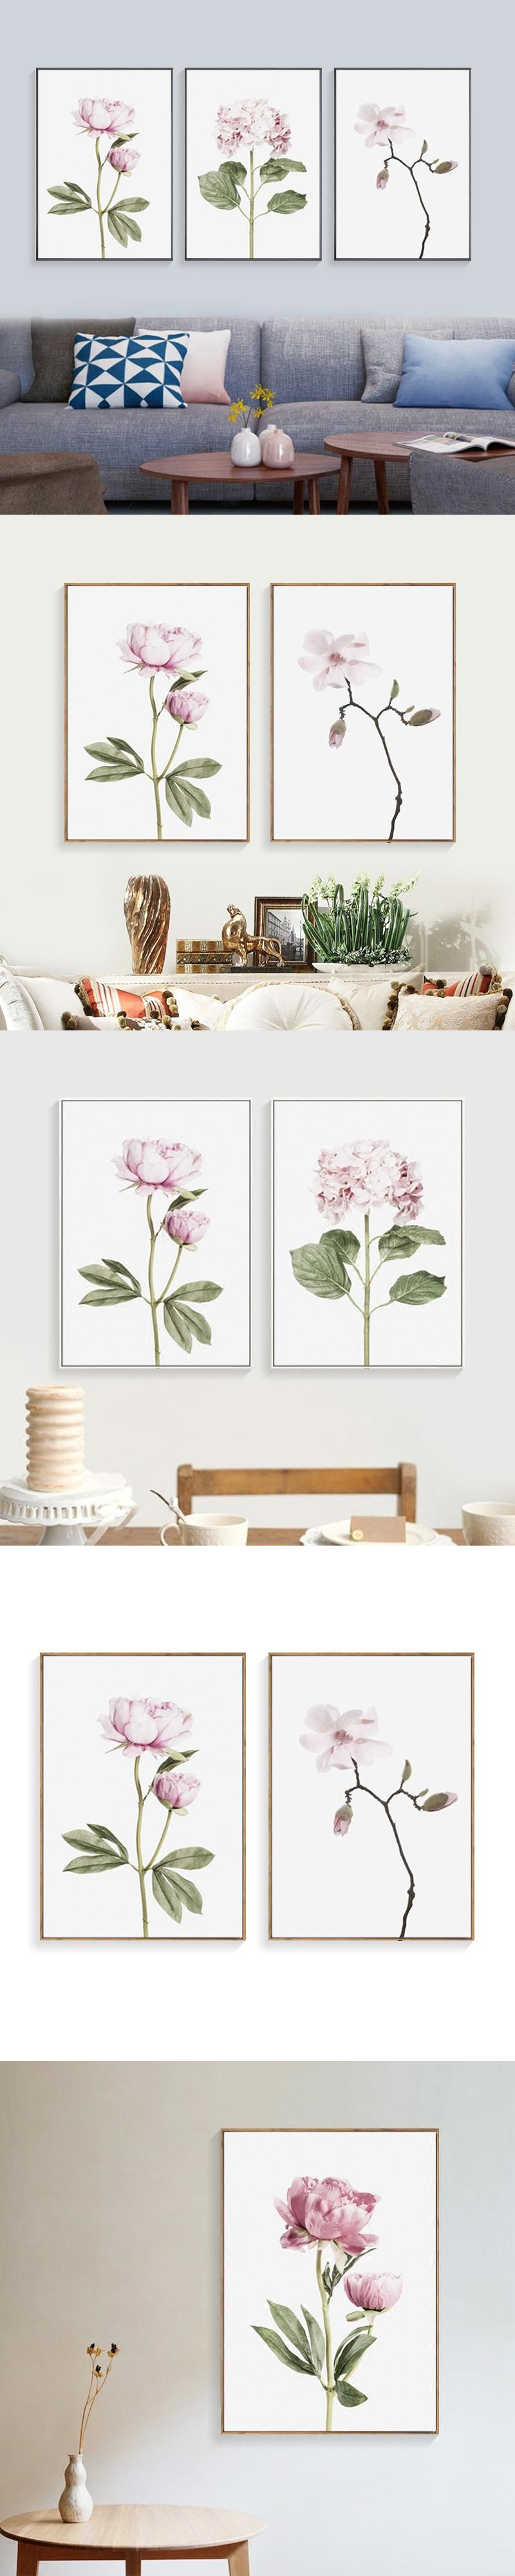 Nordic pink flower wall art canvas painting canvas pictures for